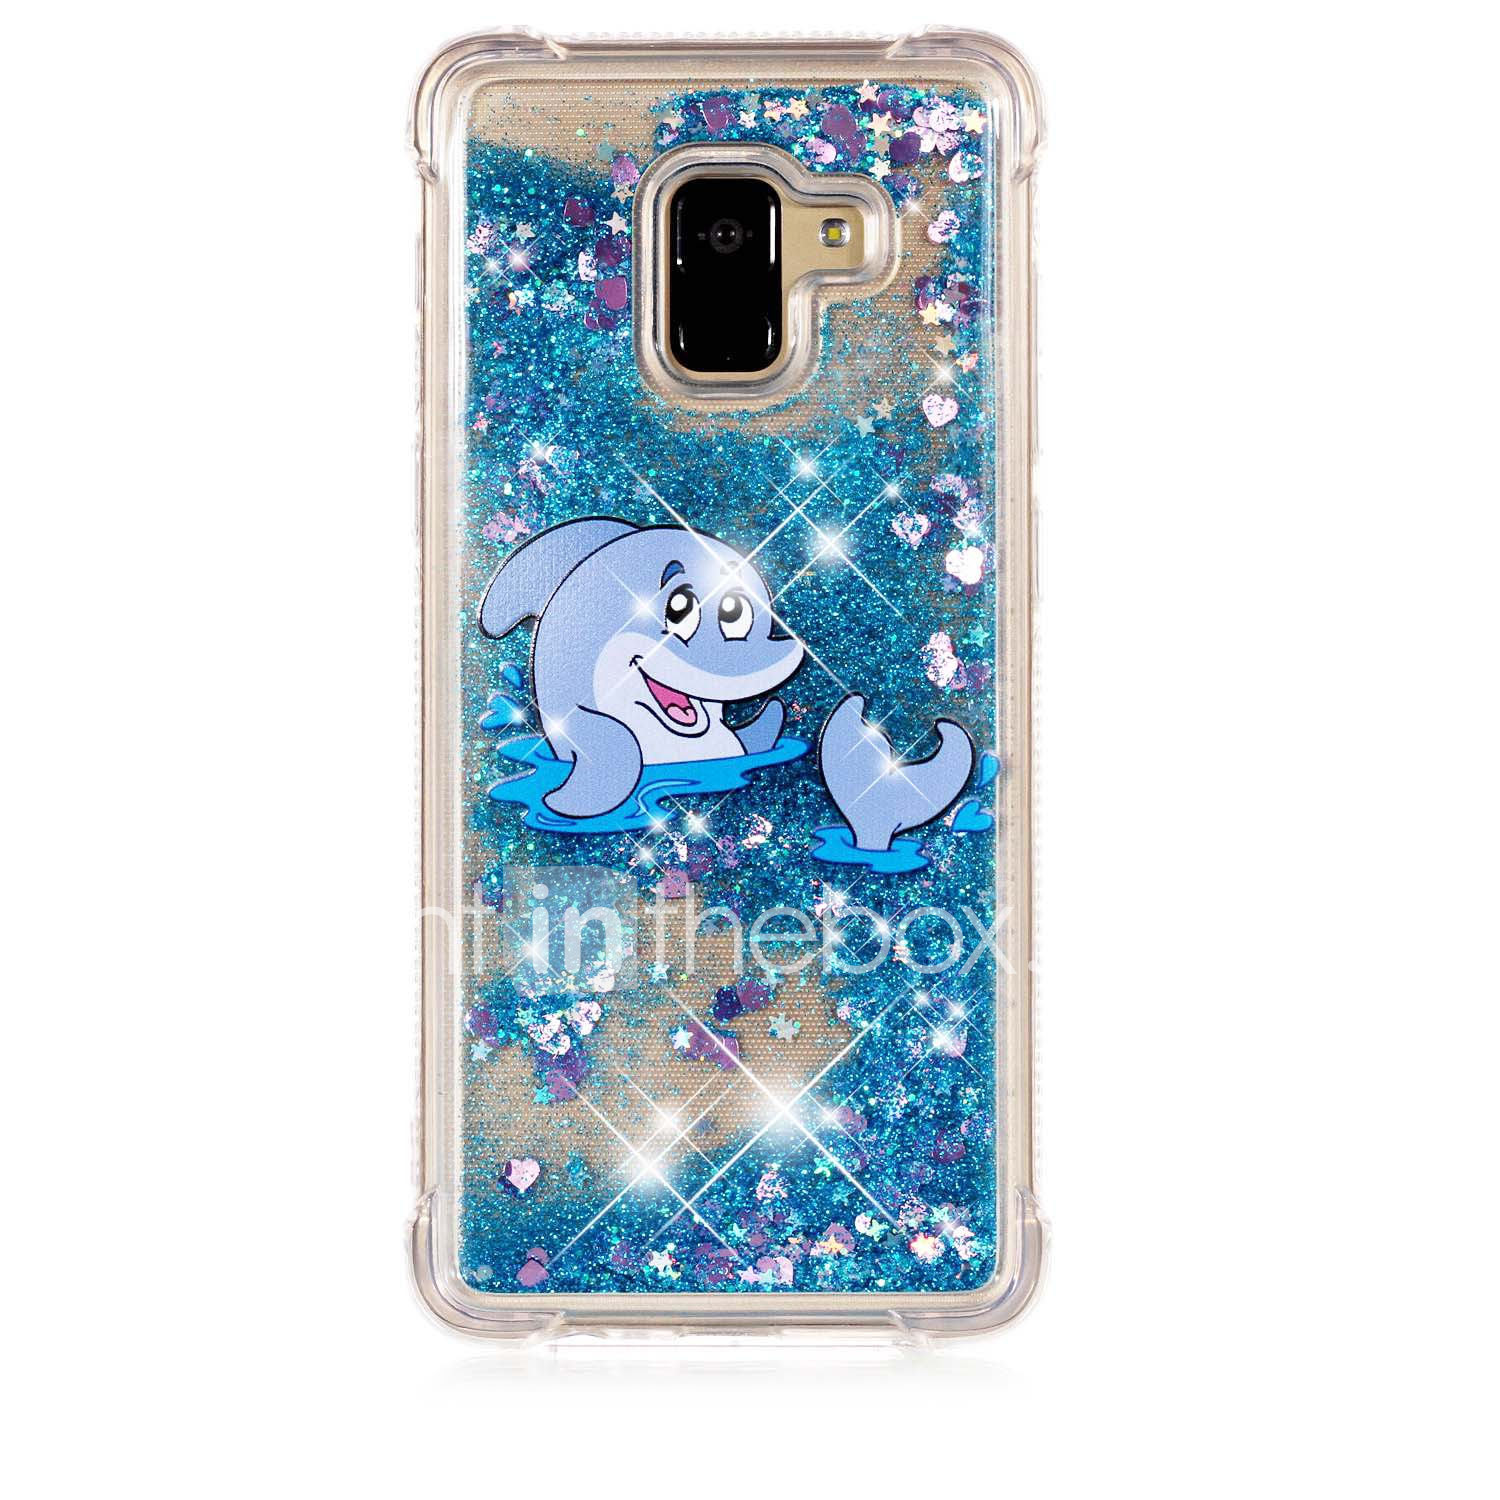 1f30aca801545c Case For Samsung Galaxy A8 2018 / A6 (2018) Shockproof / Flowing Liquid /  Pattern Back Cover Animal / Glitter Shine Soft TPU for A6 (2018) / A6+ (2018)  ...